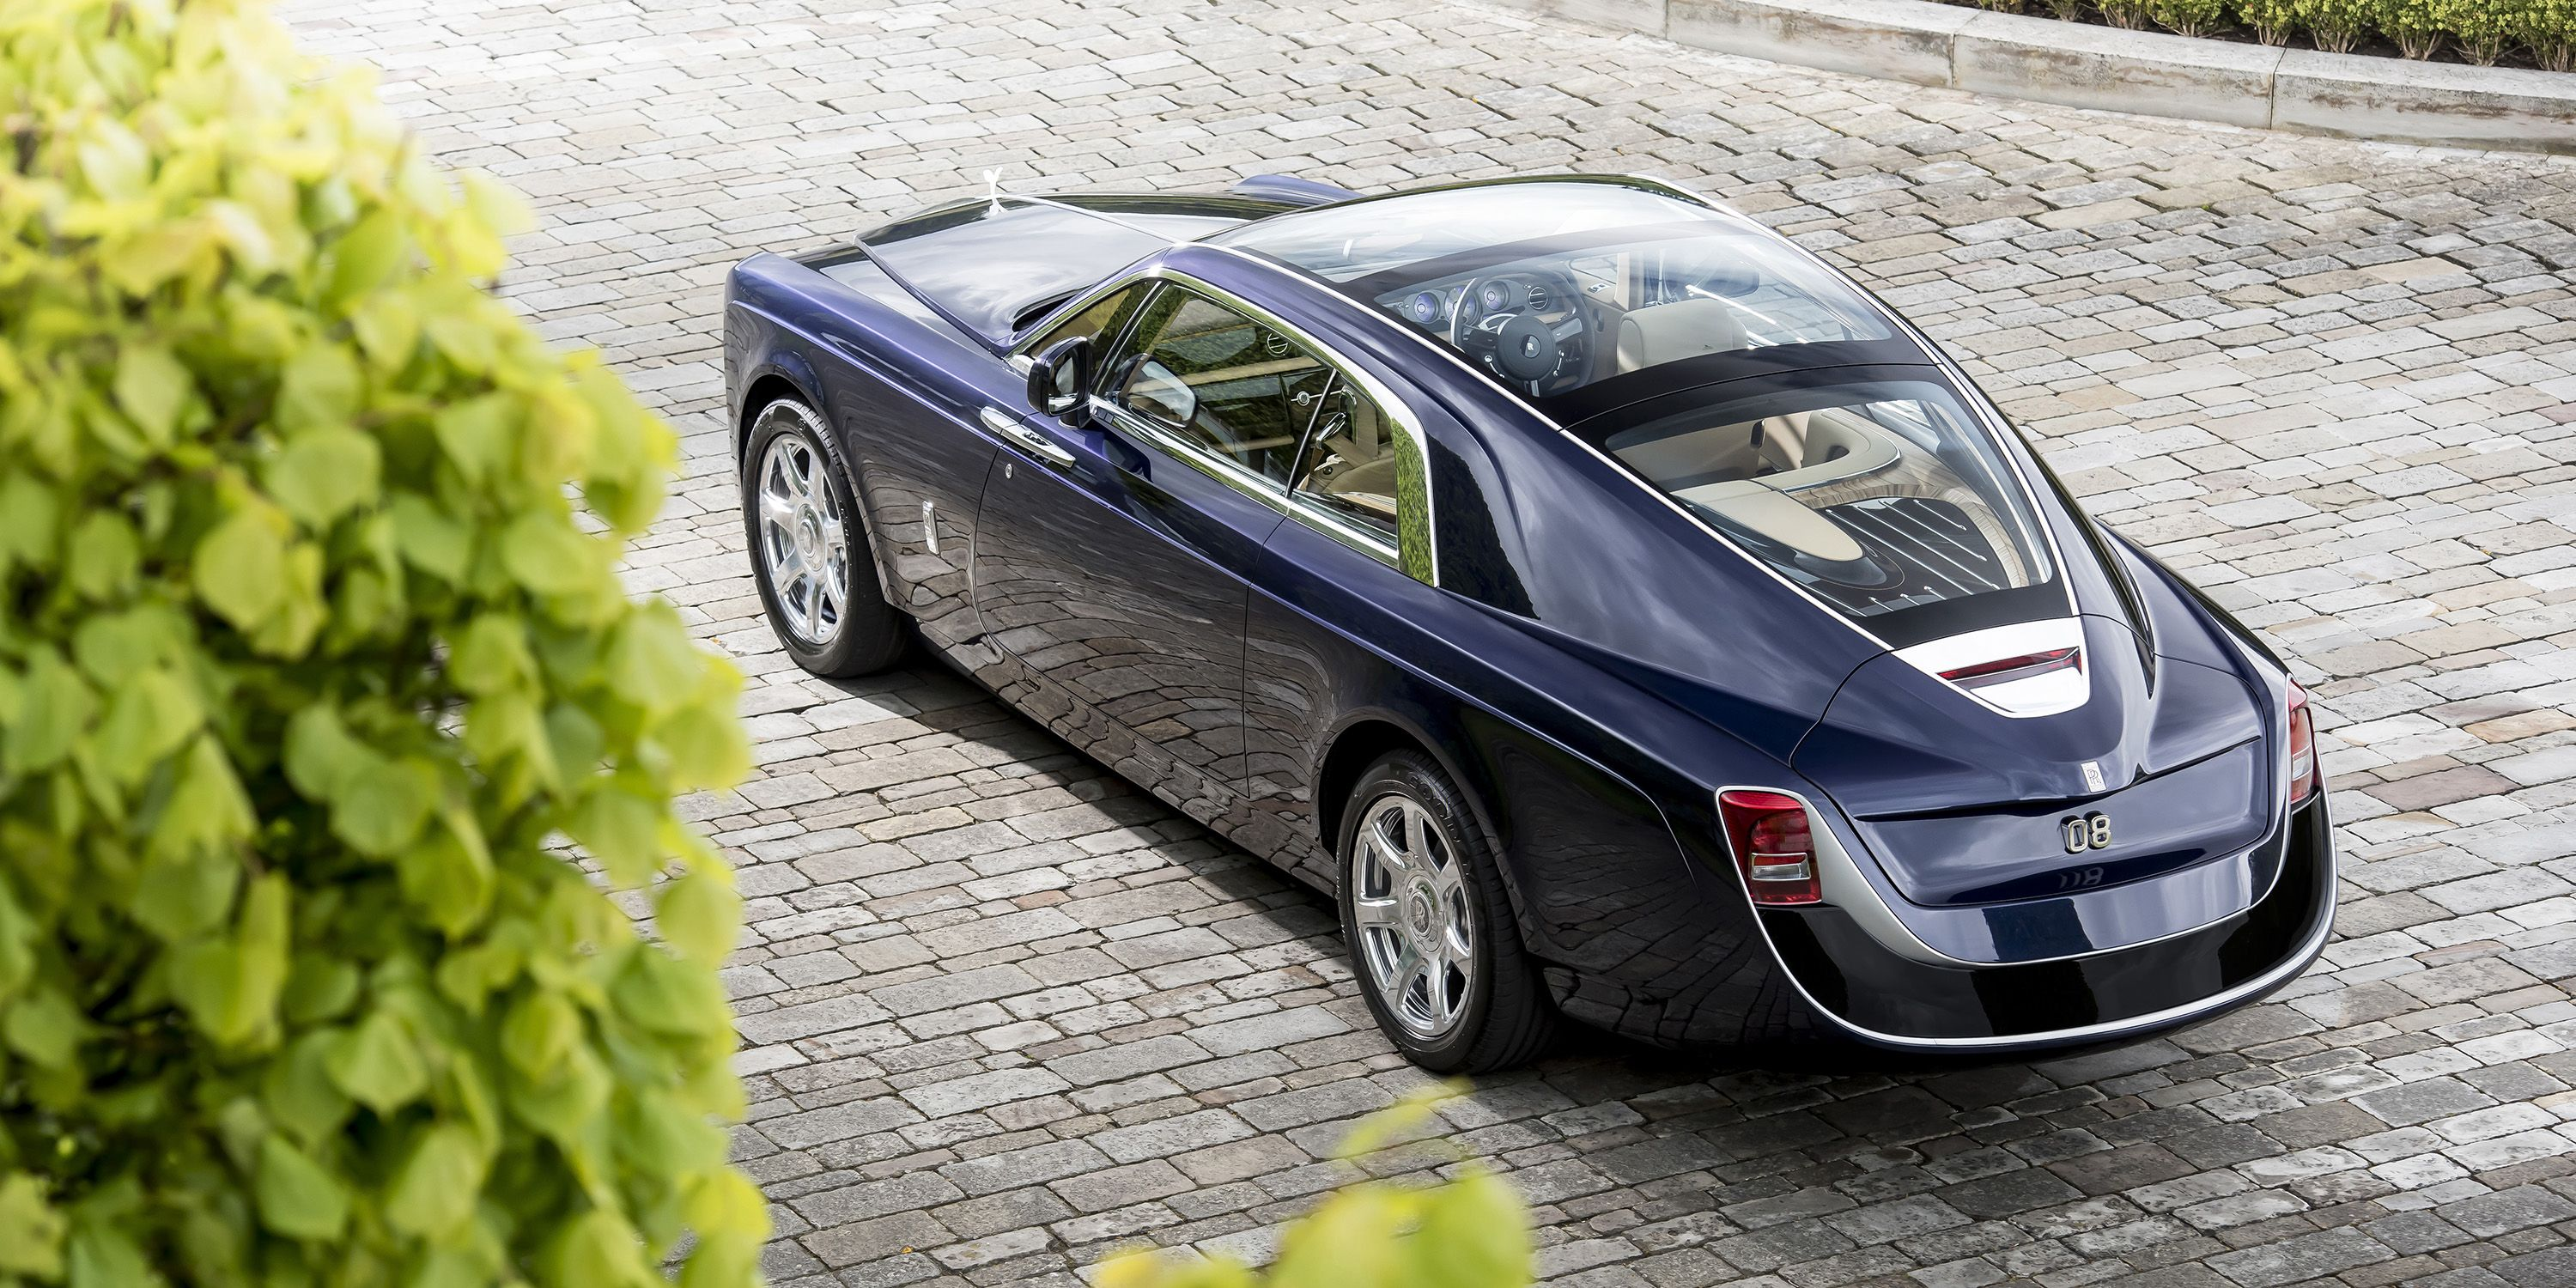 This $13 Million Rolls-Royce Took Four Years to Build